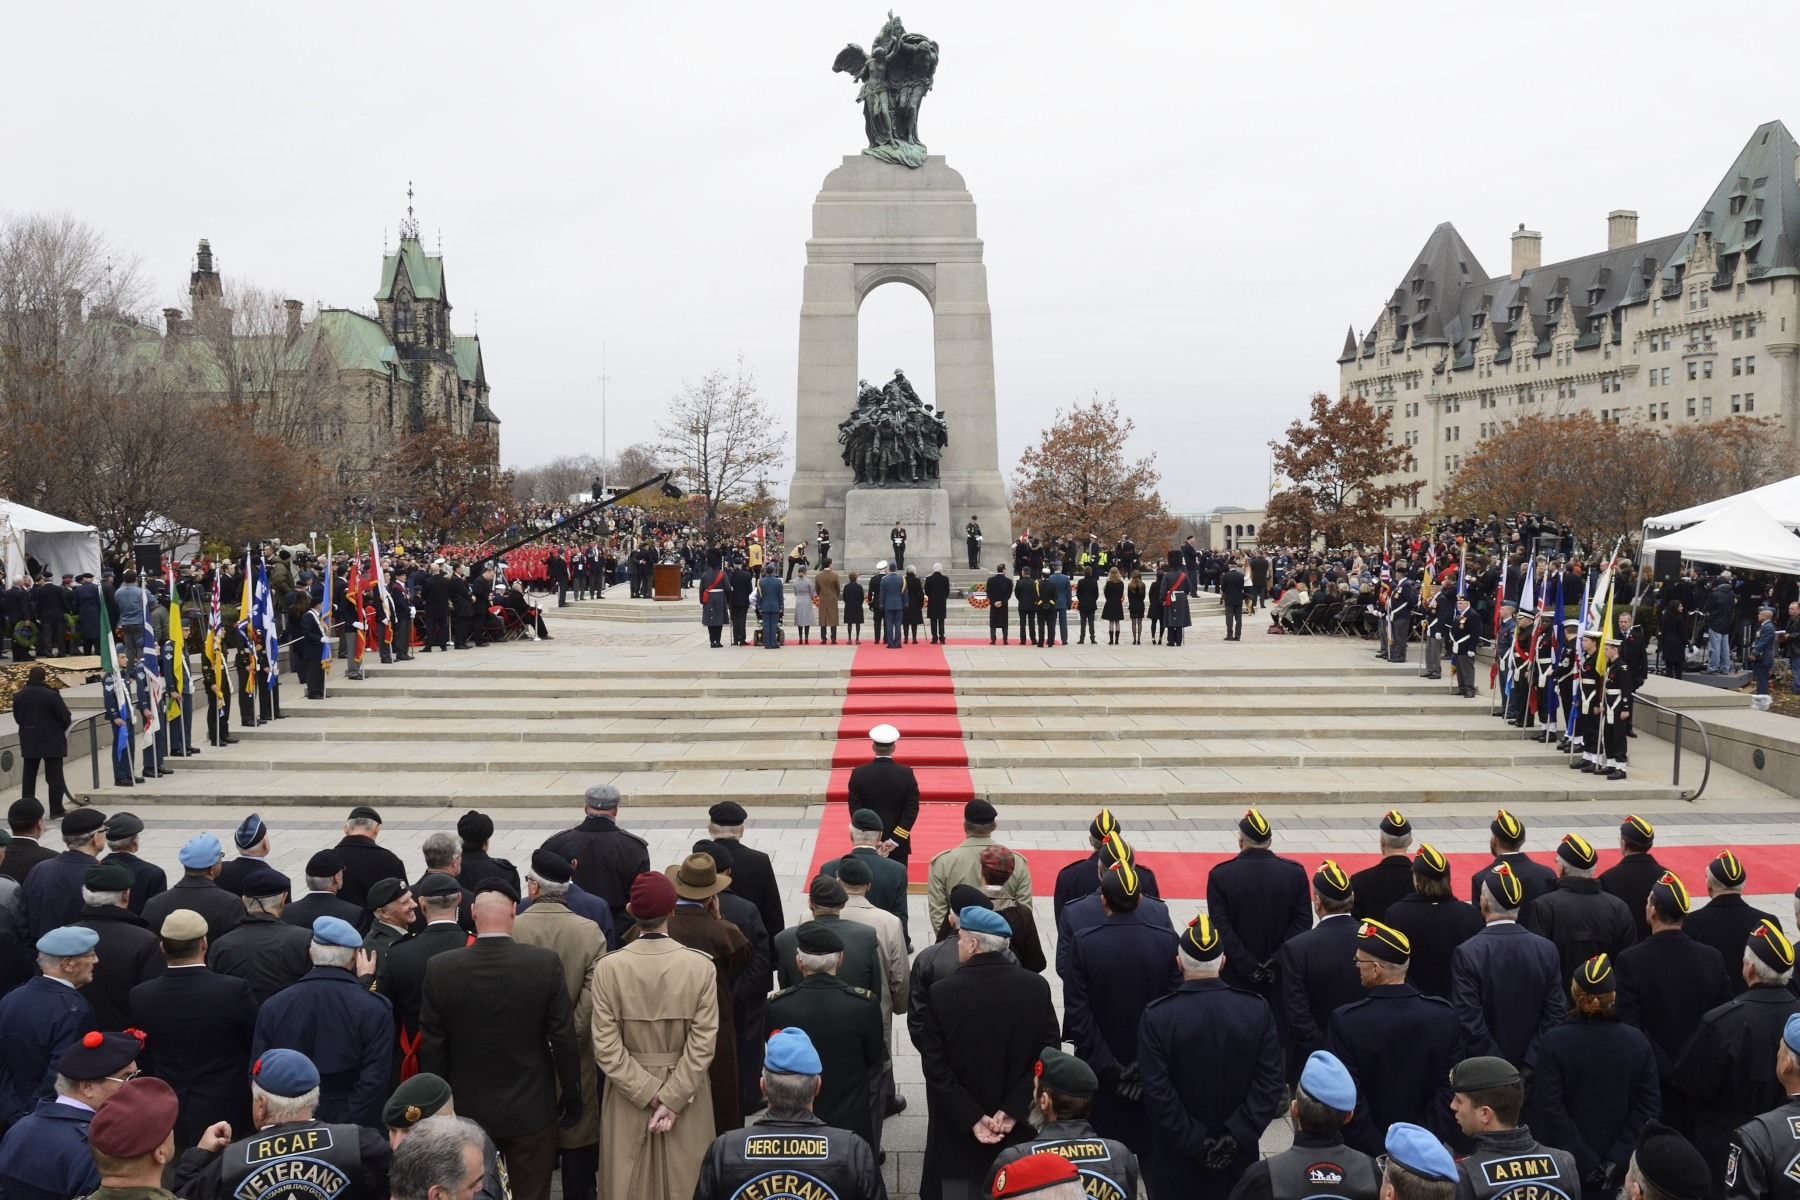 On November 11, 2015, Their Excellencies the Right Honourable David Johnston, Governor General and Commander-in-Chief of Canada, and Mrs. Sharon Johnston attended the National Remembrance Day Ceremony at the National War Memorial, in Ottawa.